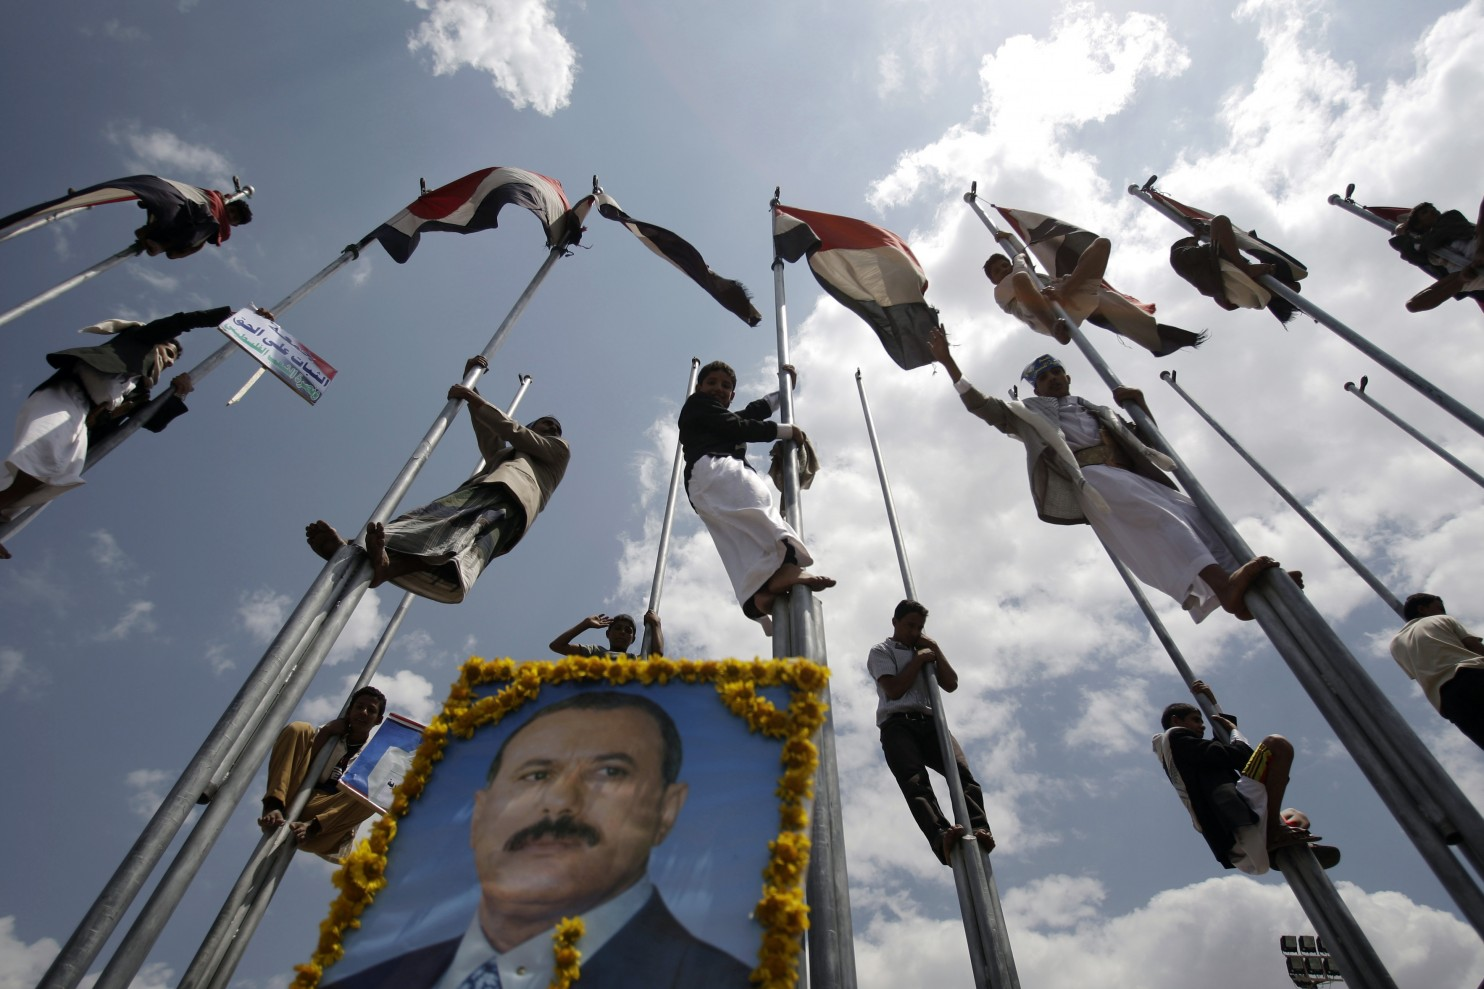 A key player in Yemen's political chaos? A strongman ousted in 2012.